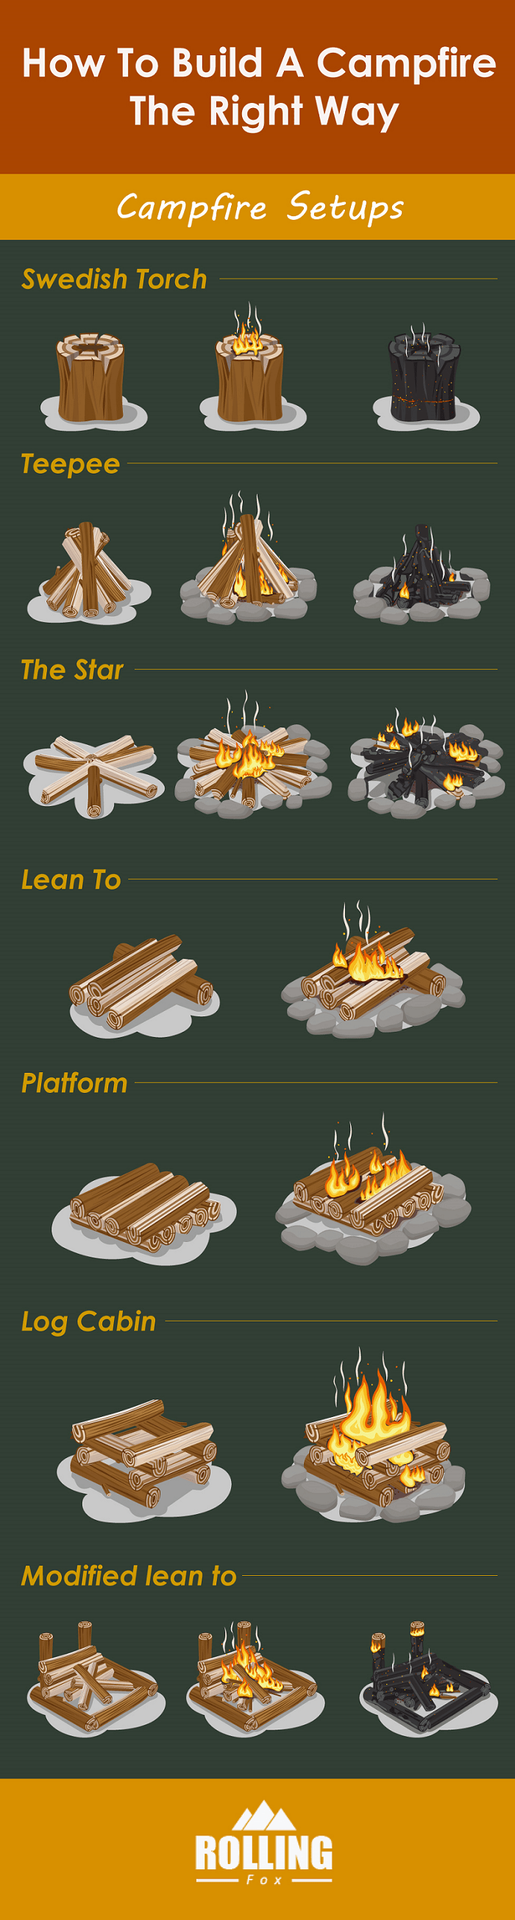 Showing the different campfire setups and the names of the style. Which one is yours? Or do you have your own special setup? Where do you get your wood for your campfire?